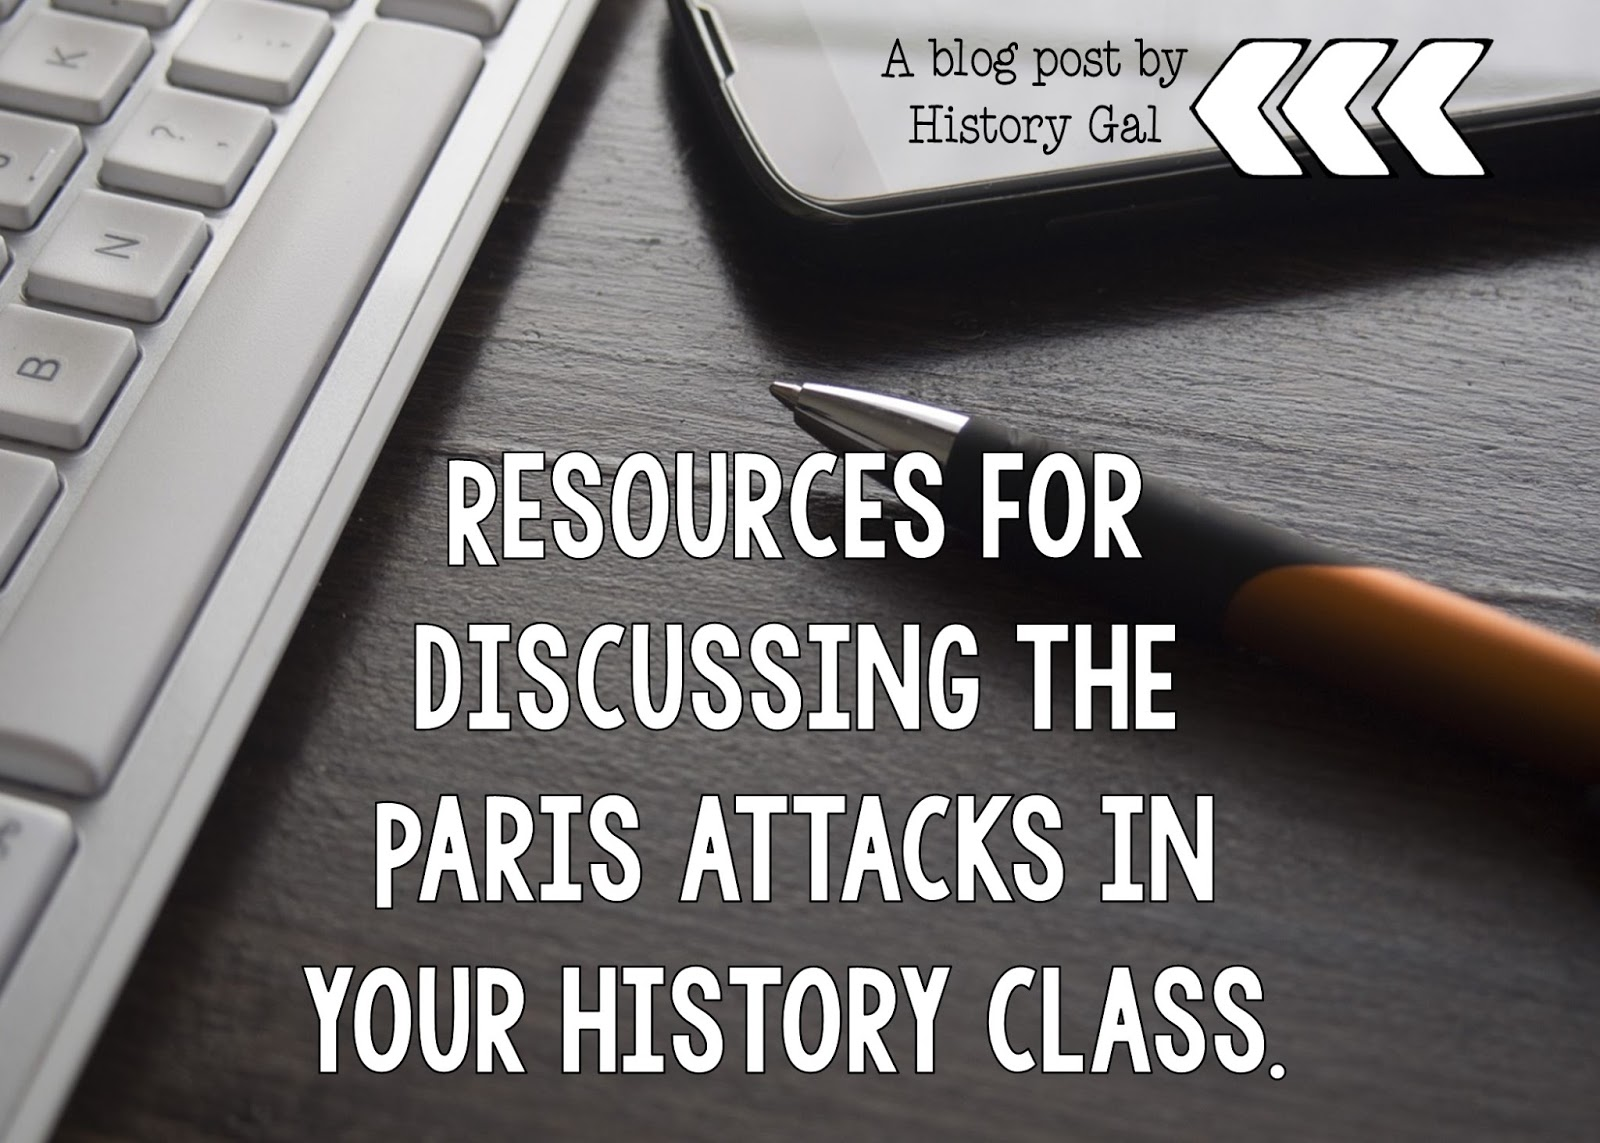 Resources for Teaching about the attacks in Paris By History Gal